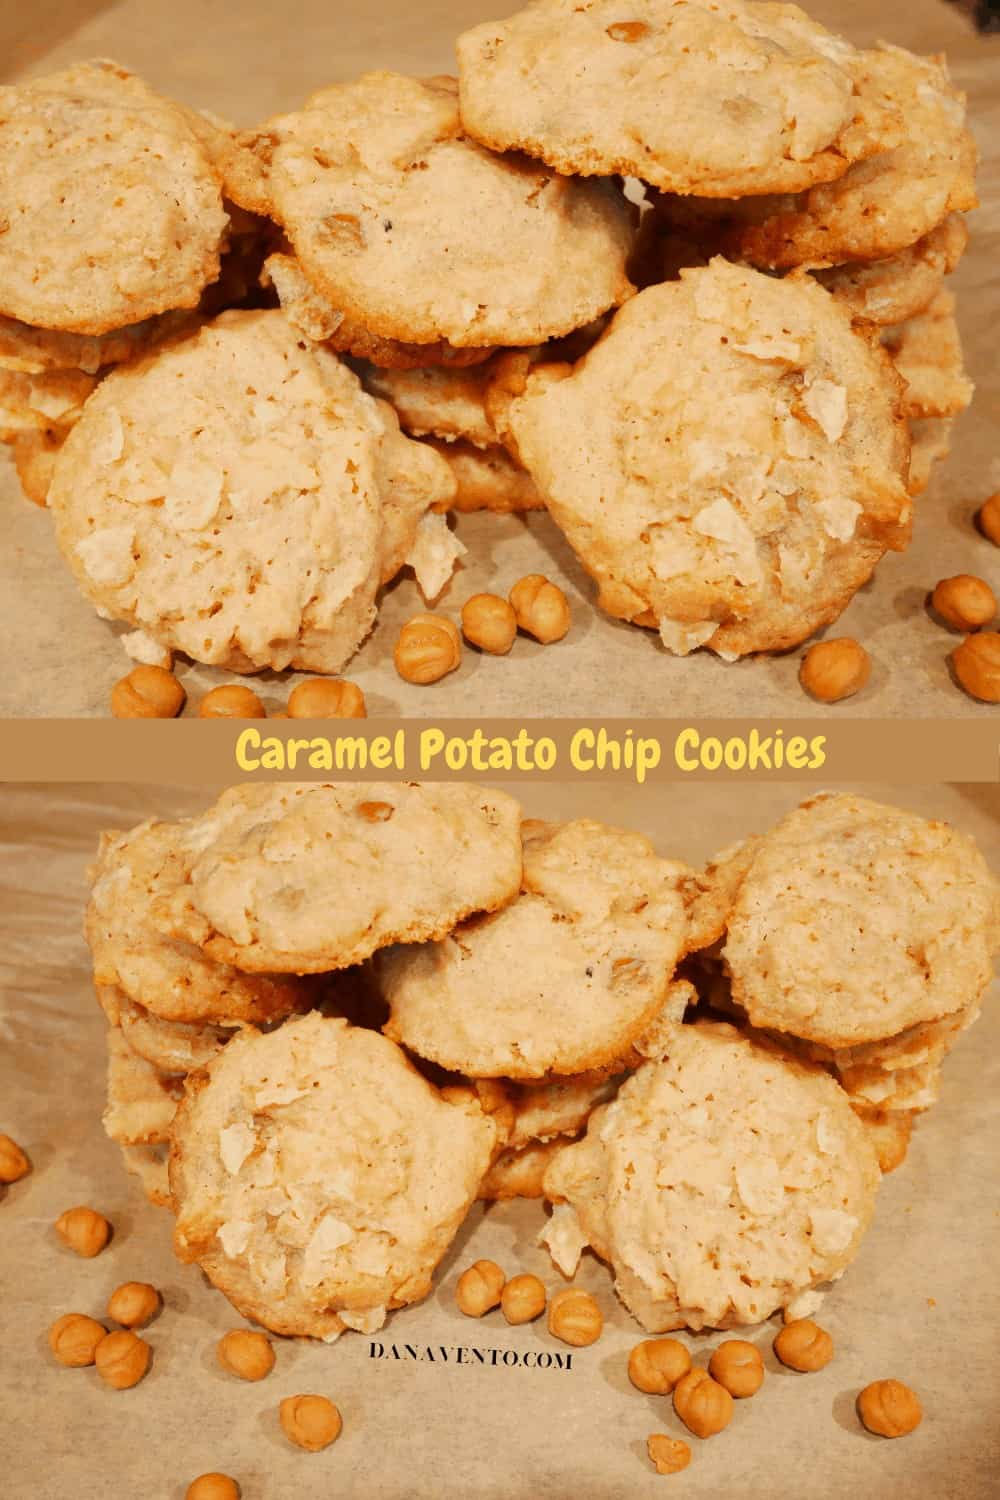 2 images of potato chip cookies